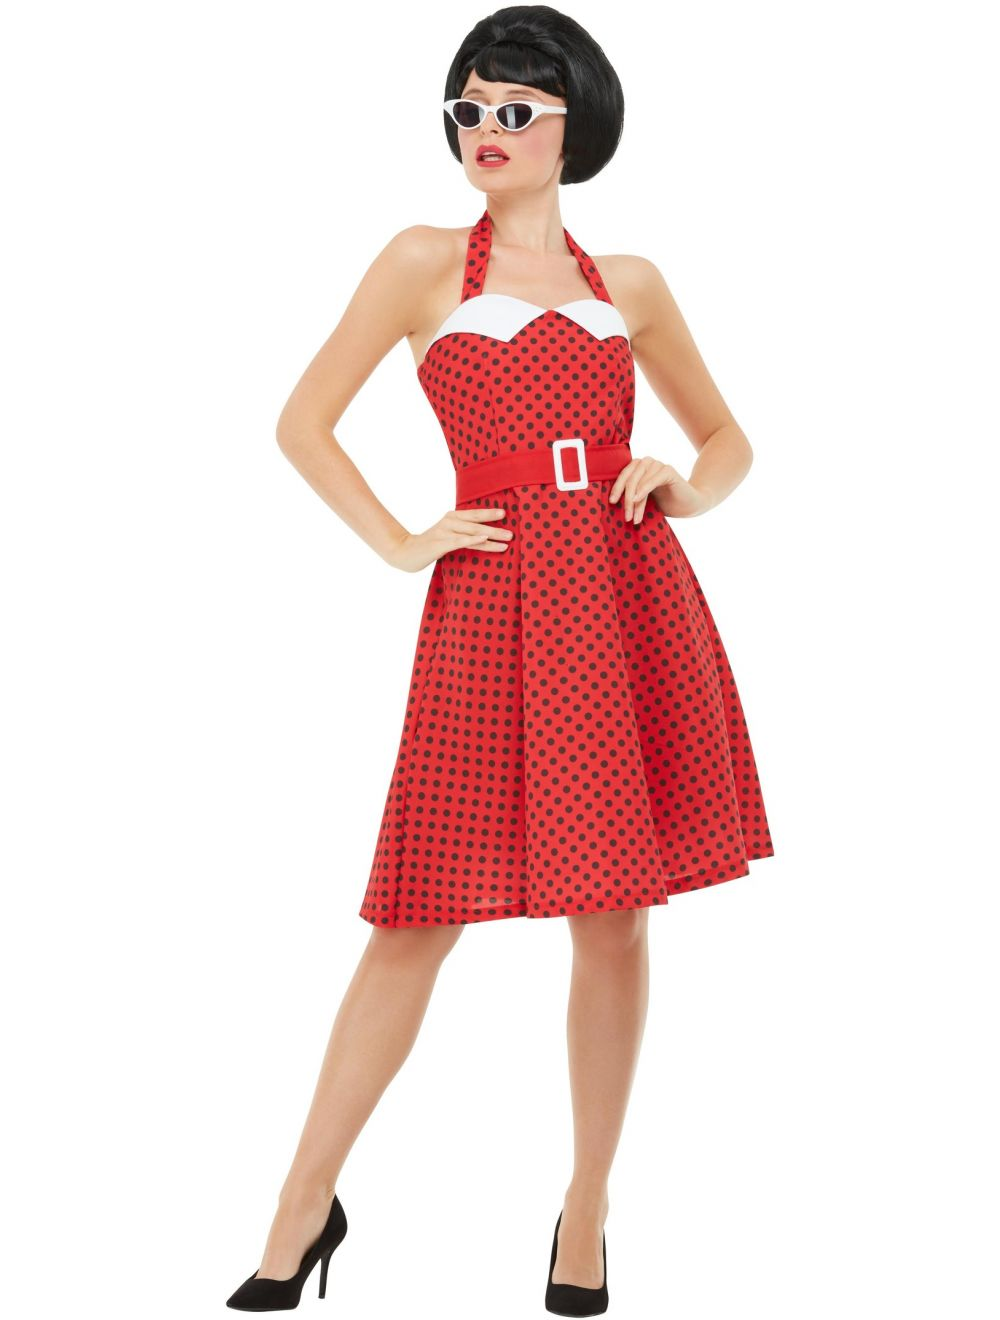 bc2318e17b36a Adult 50s Rockabilly Pin Up Costume - 51039 - Fancy Dress Ball